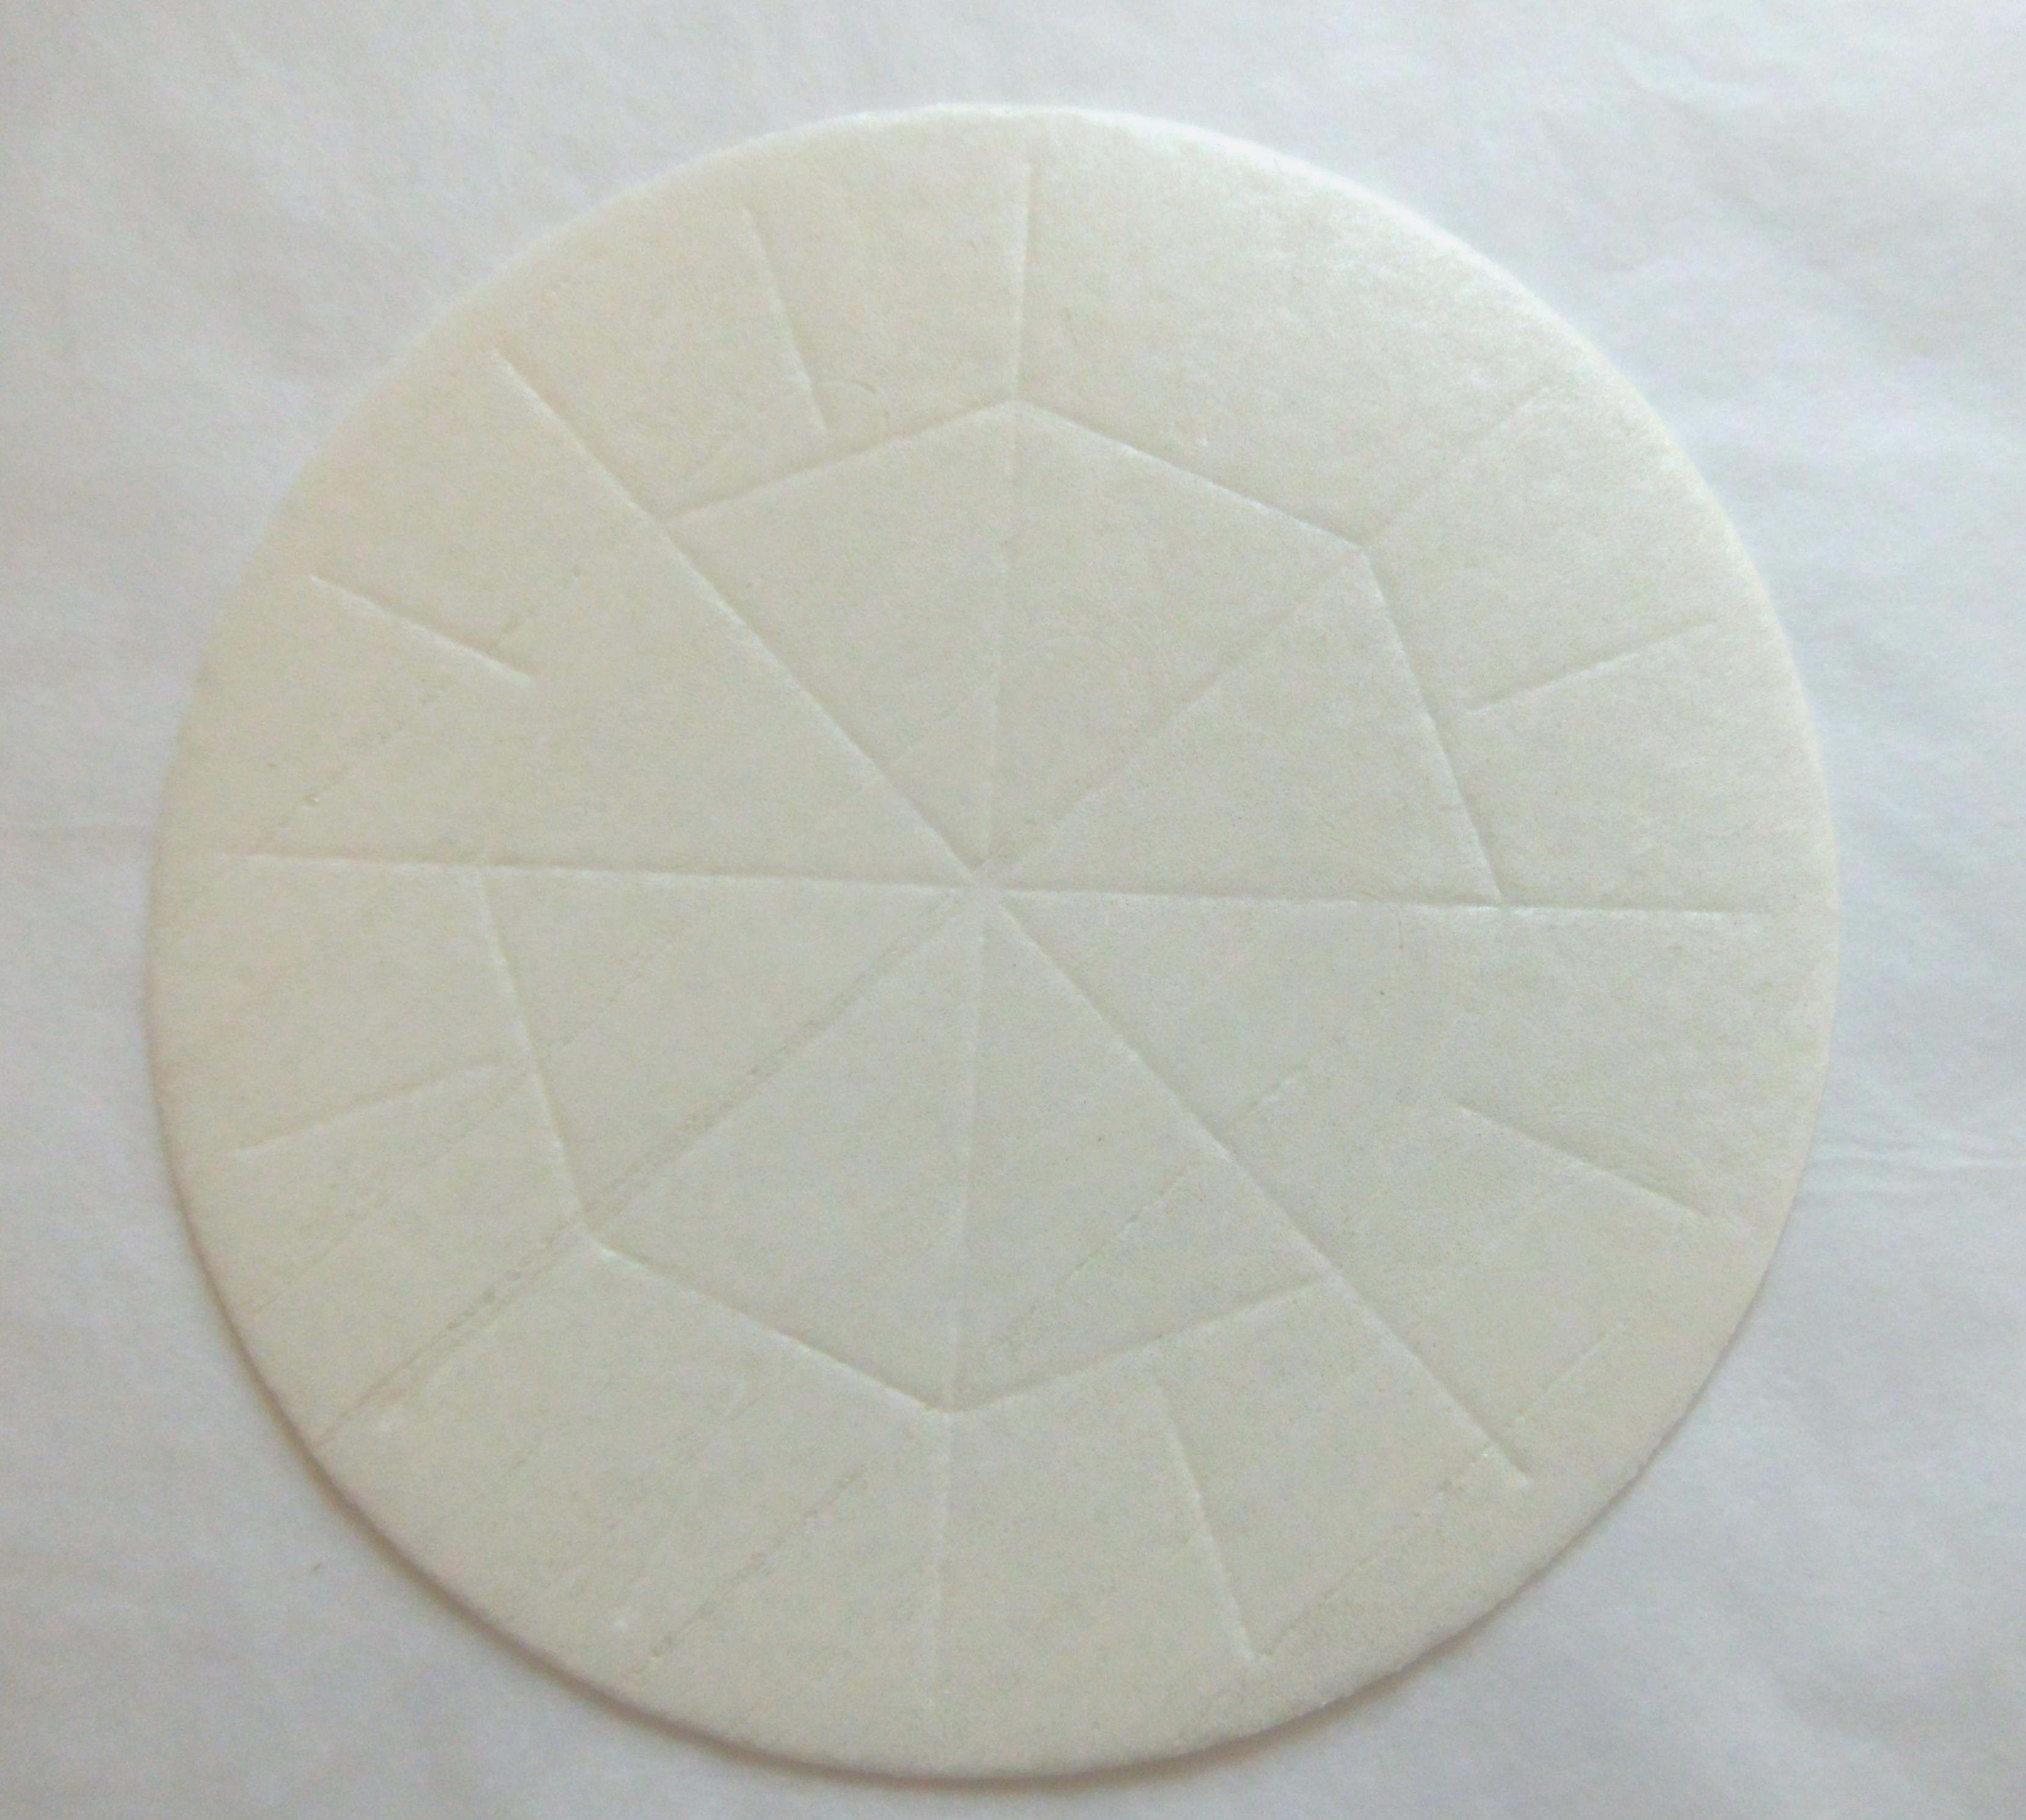 White concelebration bread